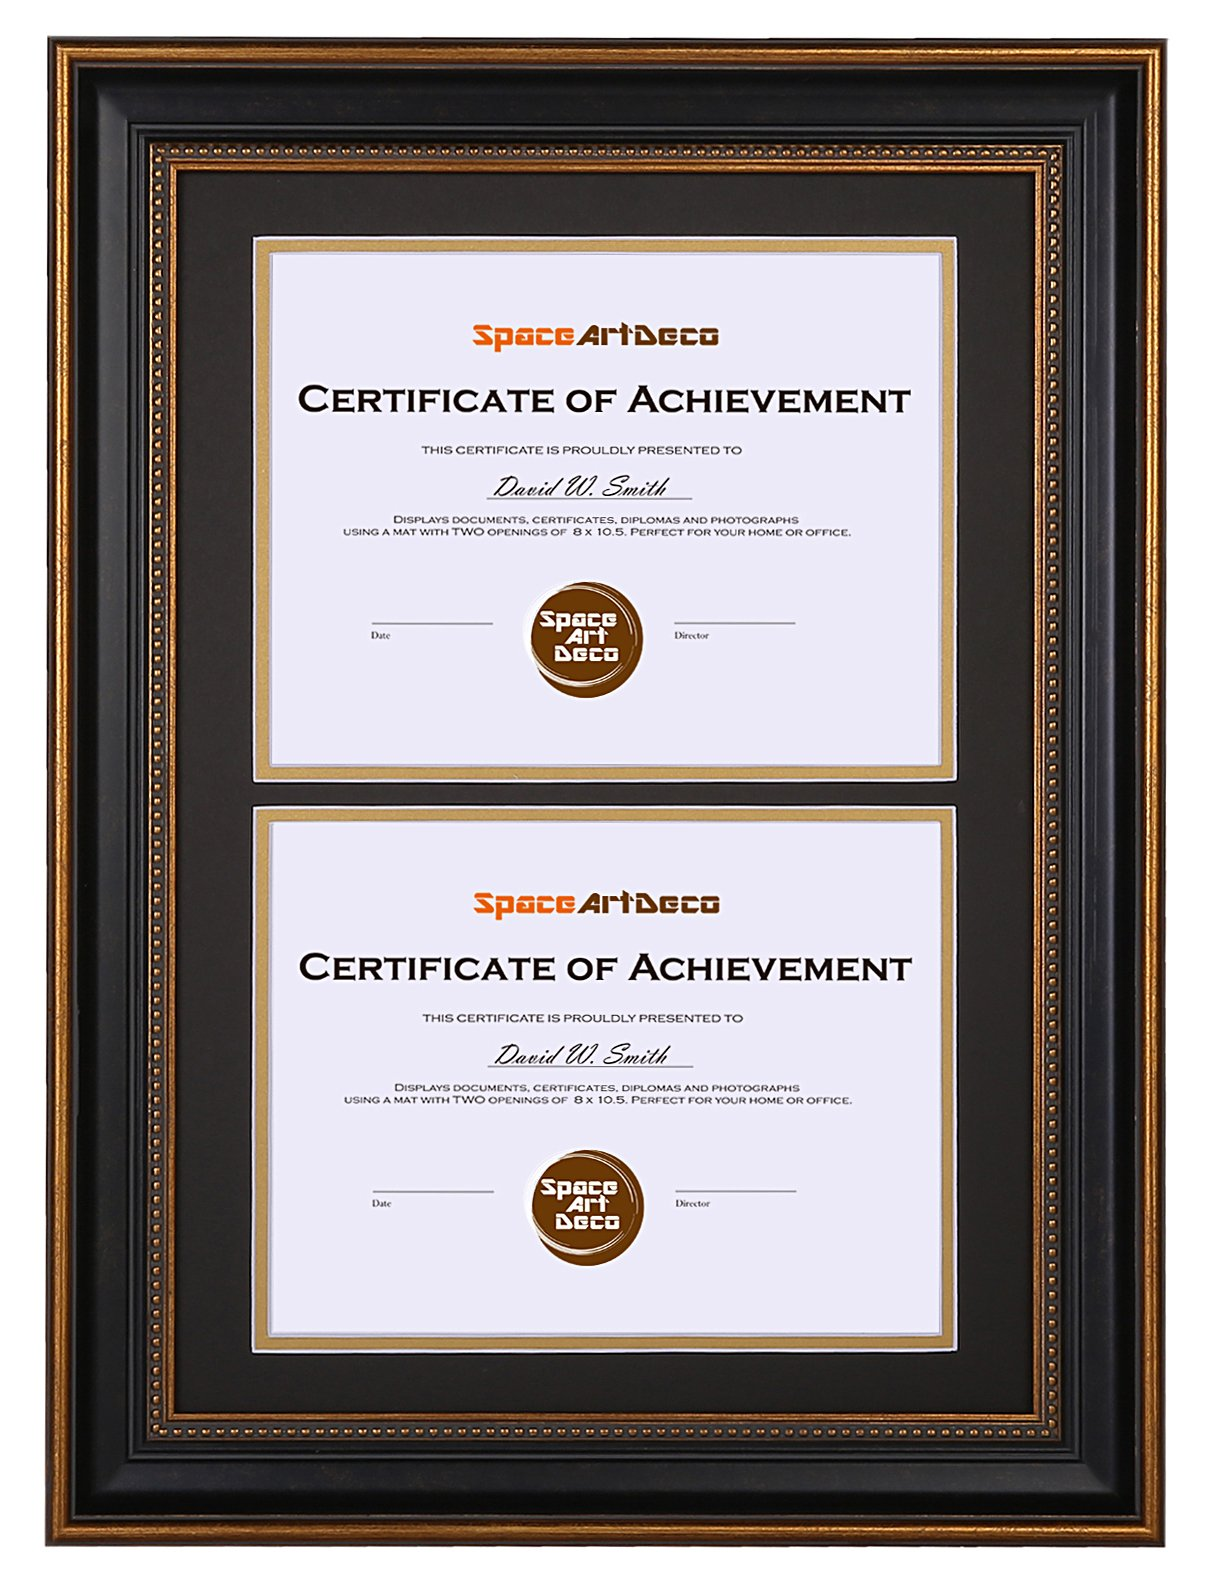 Space Art Deco 14x20 Ornate Gold Black Design Double Certificate Frame - Black Over Gold Double Mat - for Two 8.5x11-Inch Certificates and Diplomas- Sawtooth Hangers - Wall Mount - Glass (Ornate) by Space Art Deco